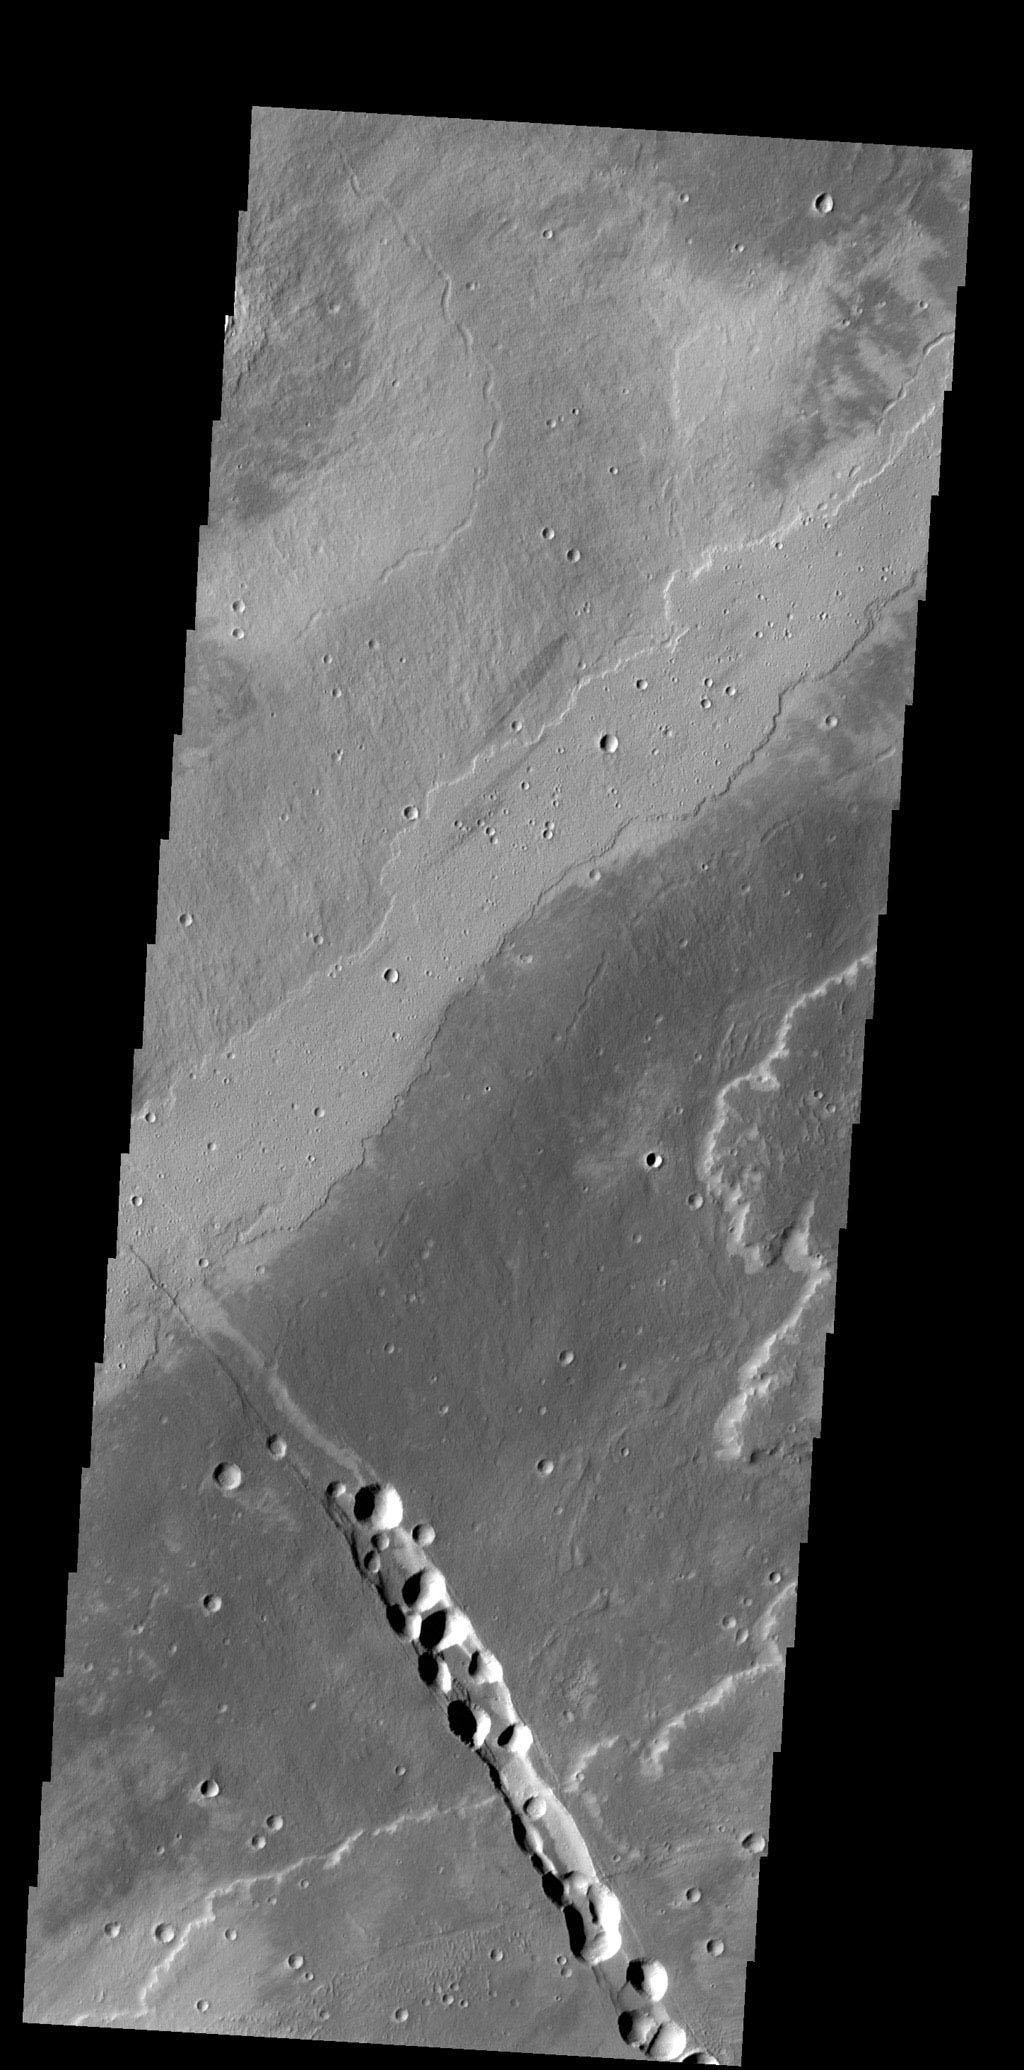 This image from NASA's 2001 Mars Odyssey spacecraft shows a small portion of the lava flows from Alba Mons. The depression and collapse features within it are part of the large system of tectonic features created by the apparent collapse of the volcano.